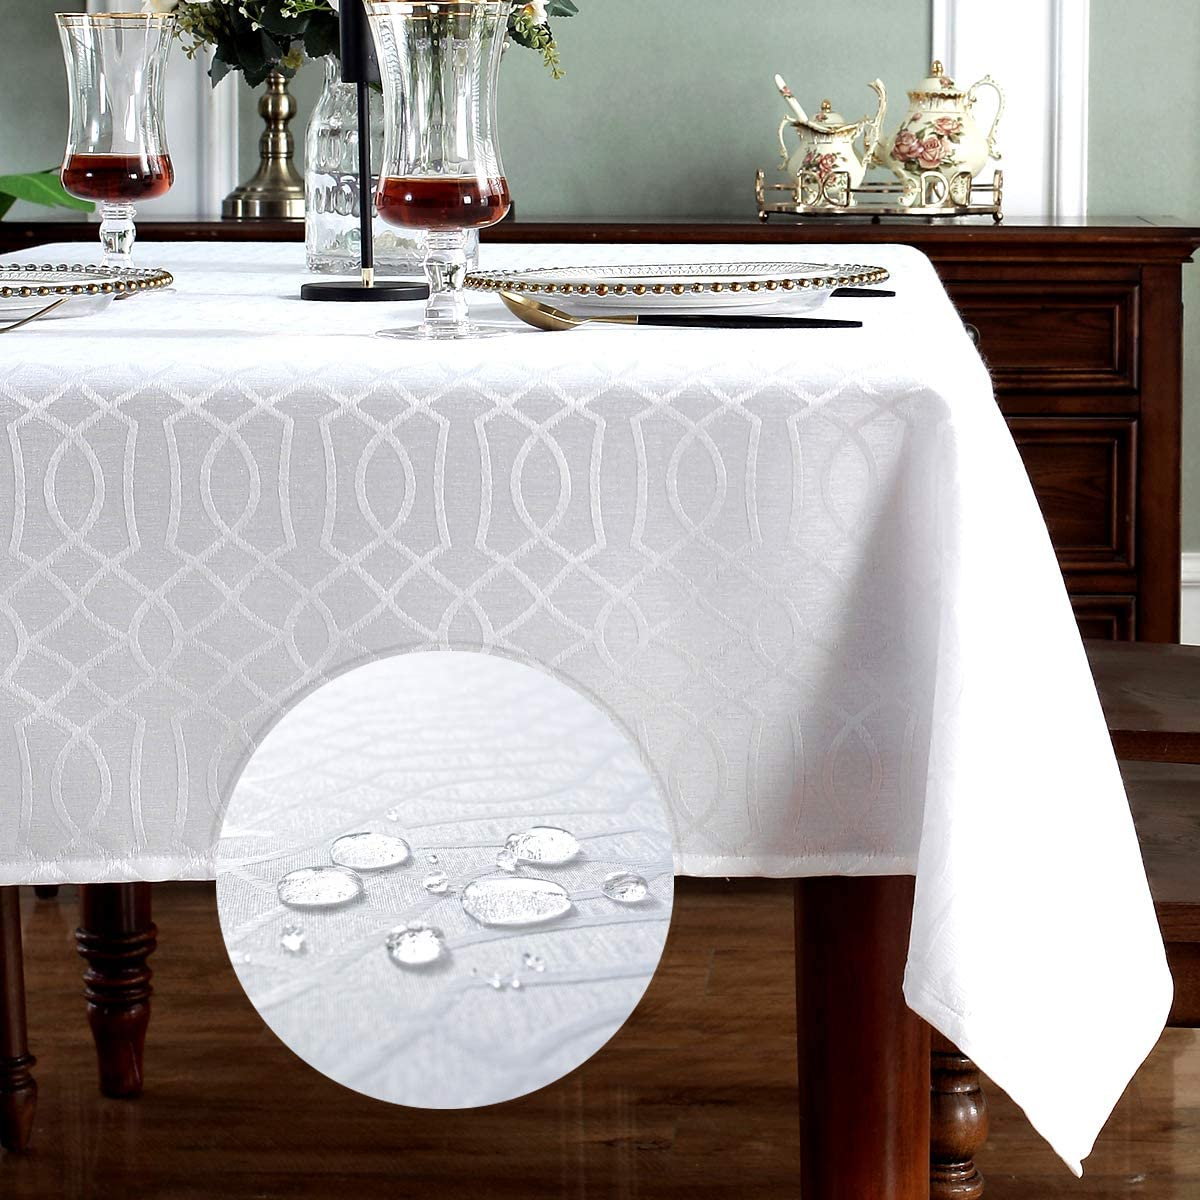 SMART&CASUAL Table Cloth Rectangle Jacquard Waved Waterproof Spillproof Wrinkle Free Washable Fall Tablecloth Decorative Cover Holiday Parties Kitchen Dining (White 60